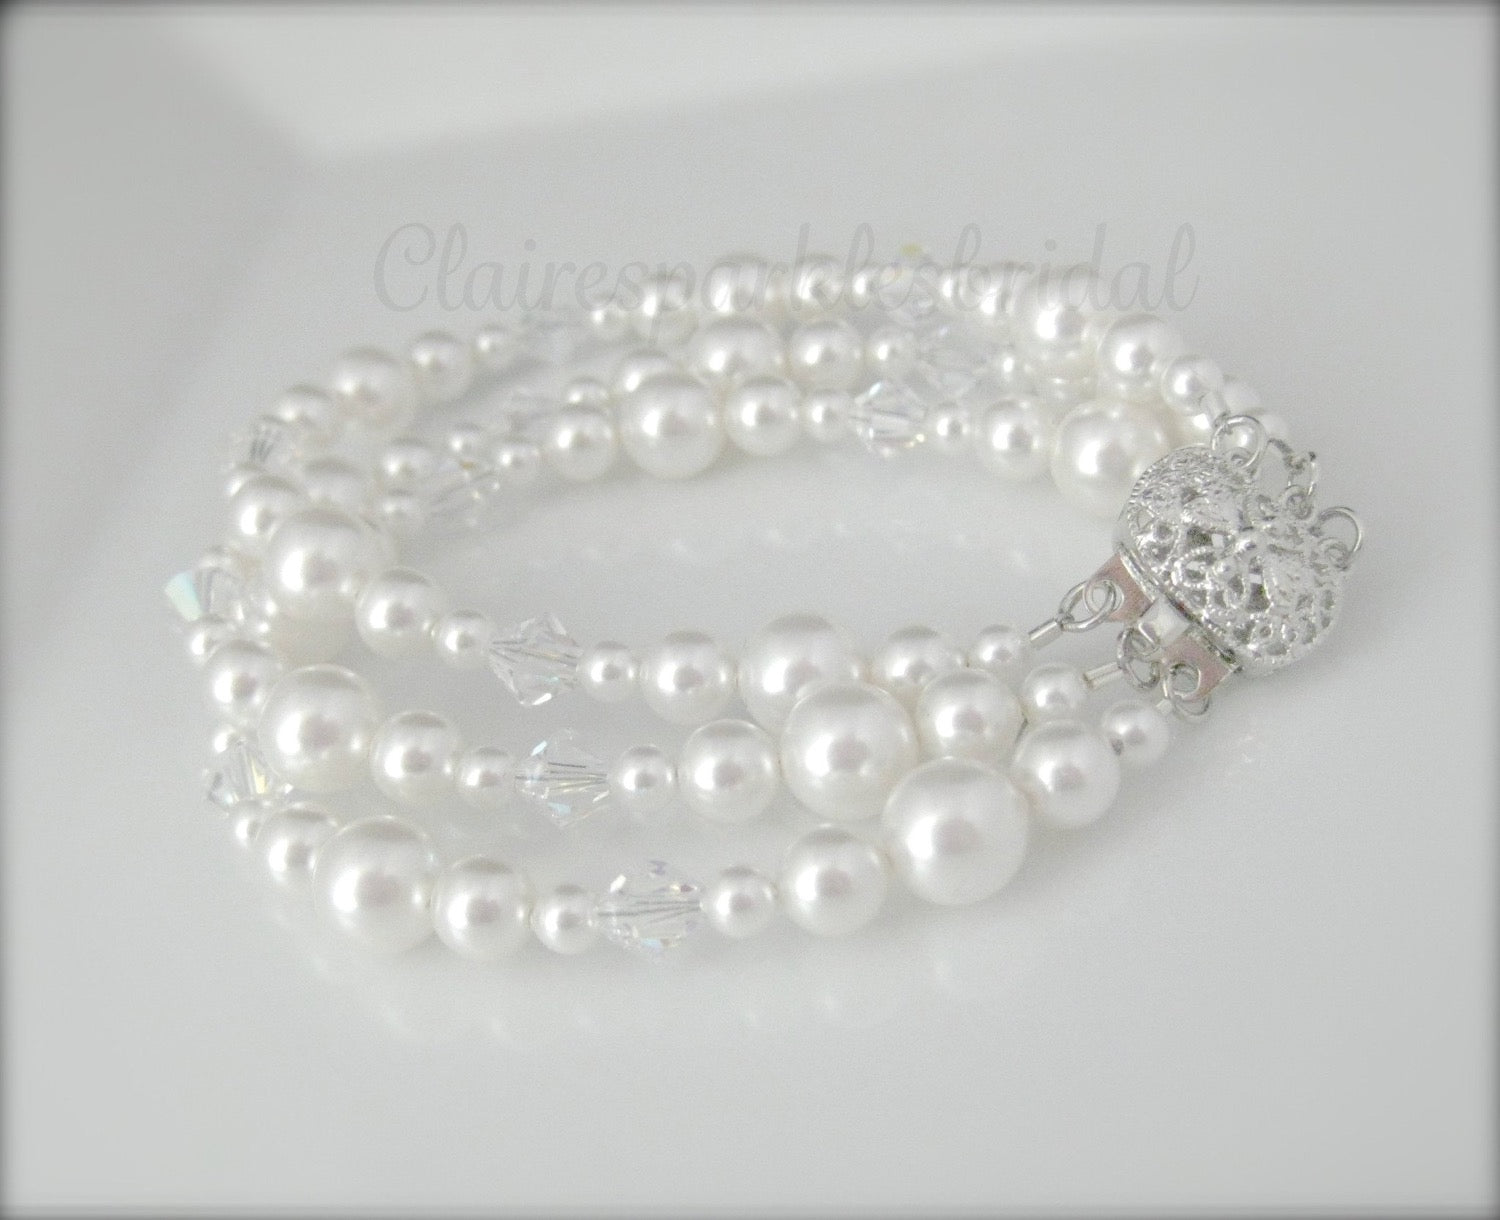 bridal jewelry pearl and crystal bracelet - Clairesbridal - 2